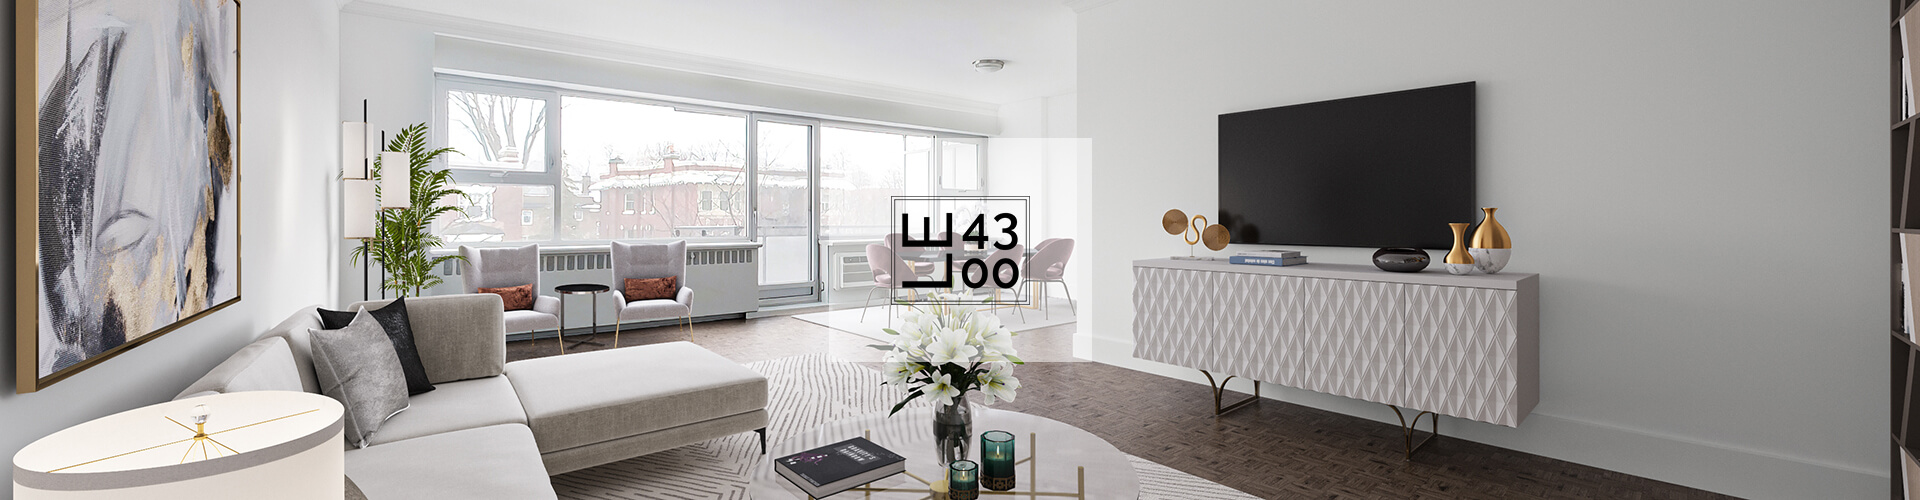 Modern living room at Le 4300 Apartments in Montreal. Rent with Minto Apartments.